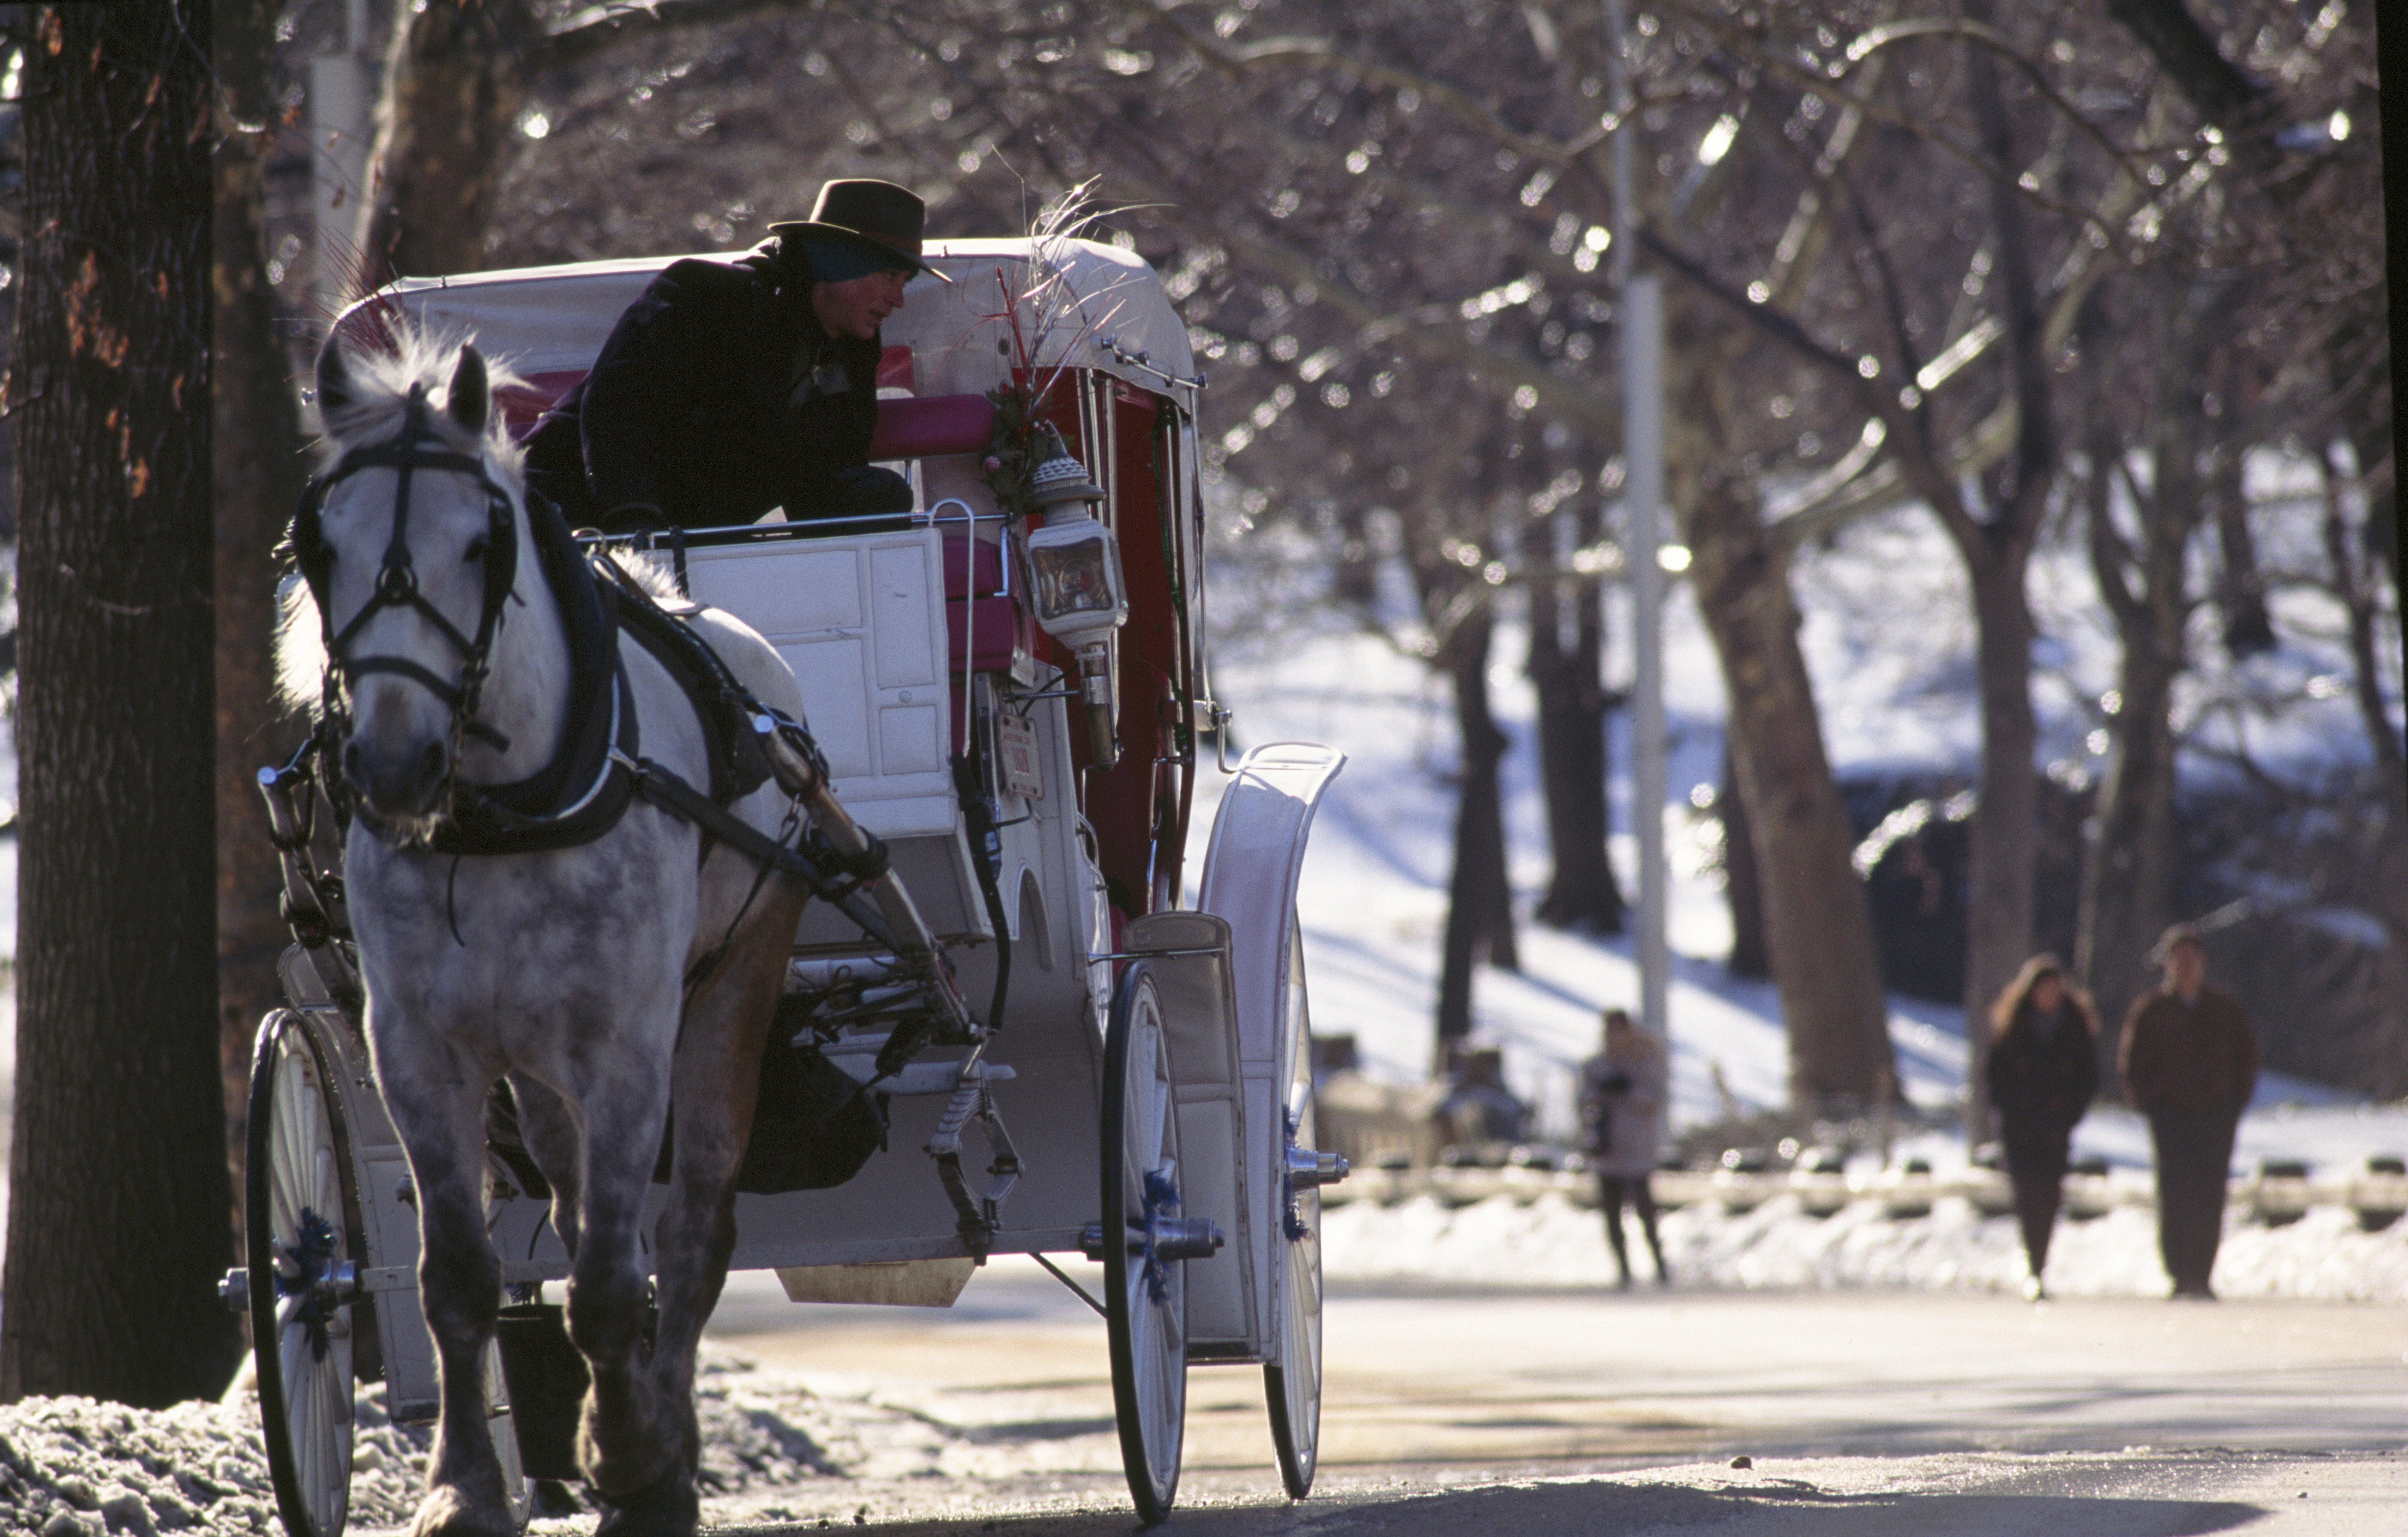 USA, New York City,  Horsedrawn carriage in Central Park